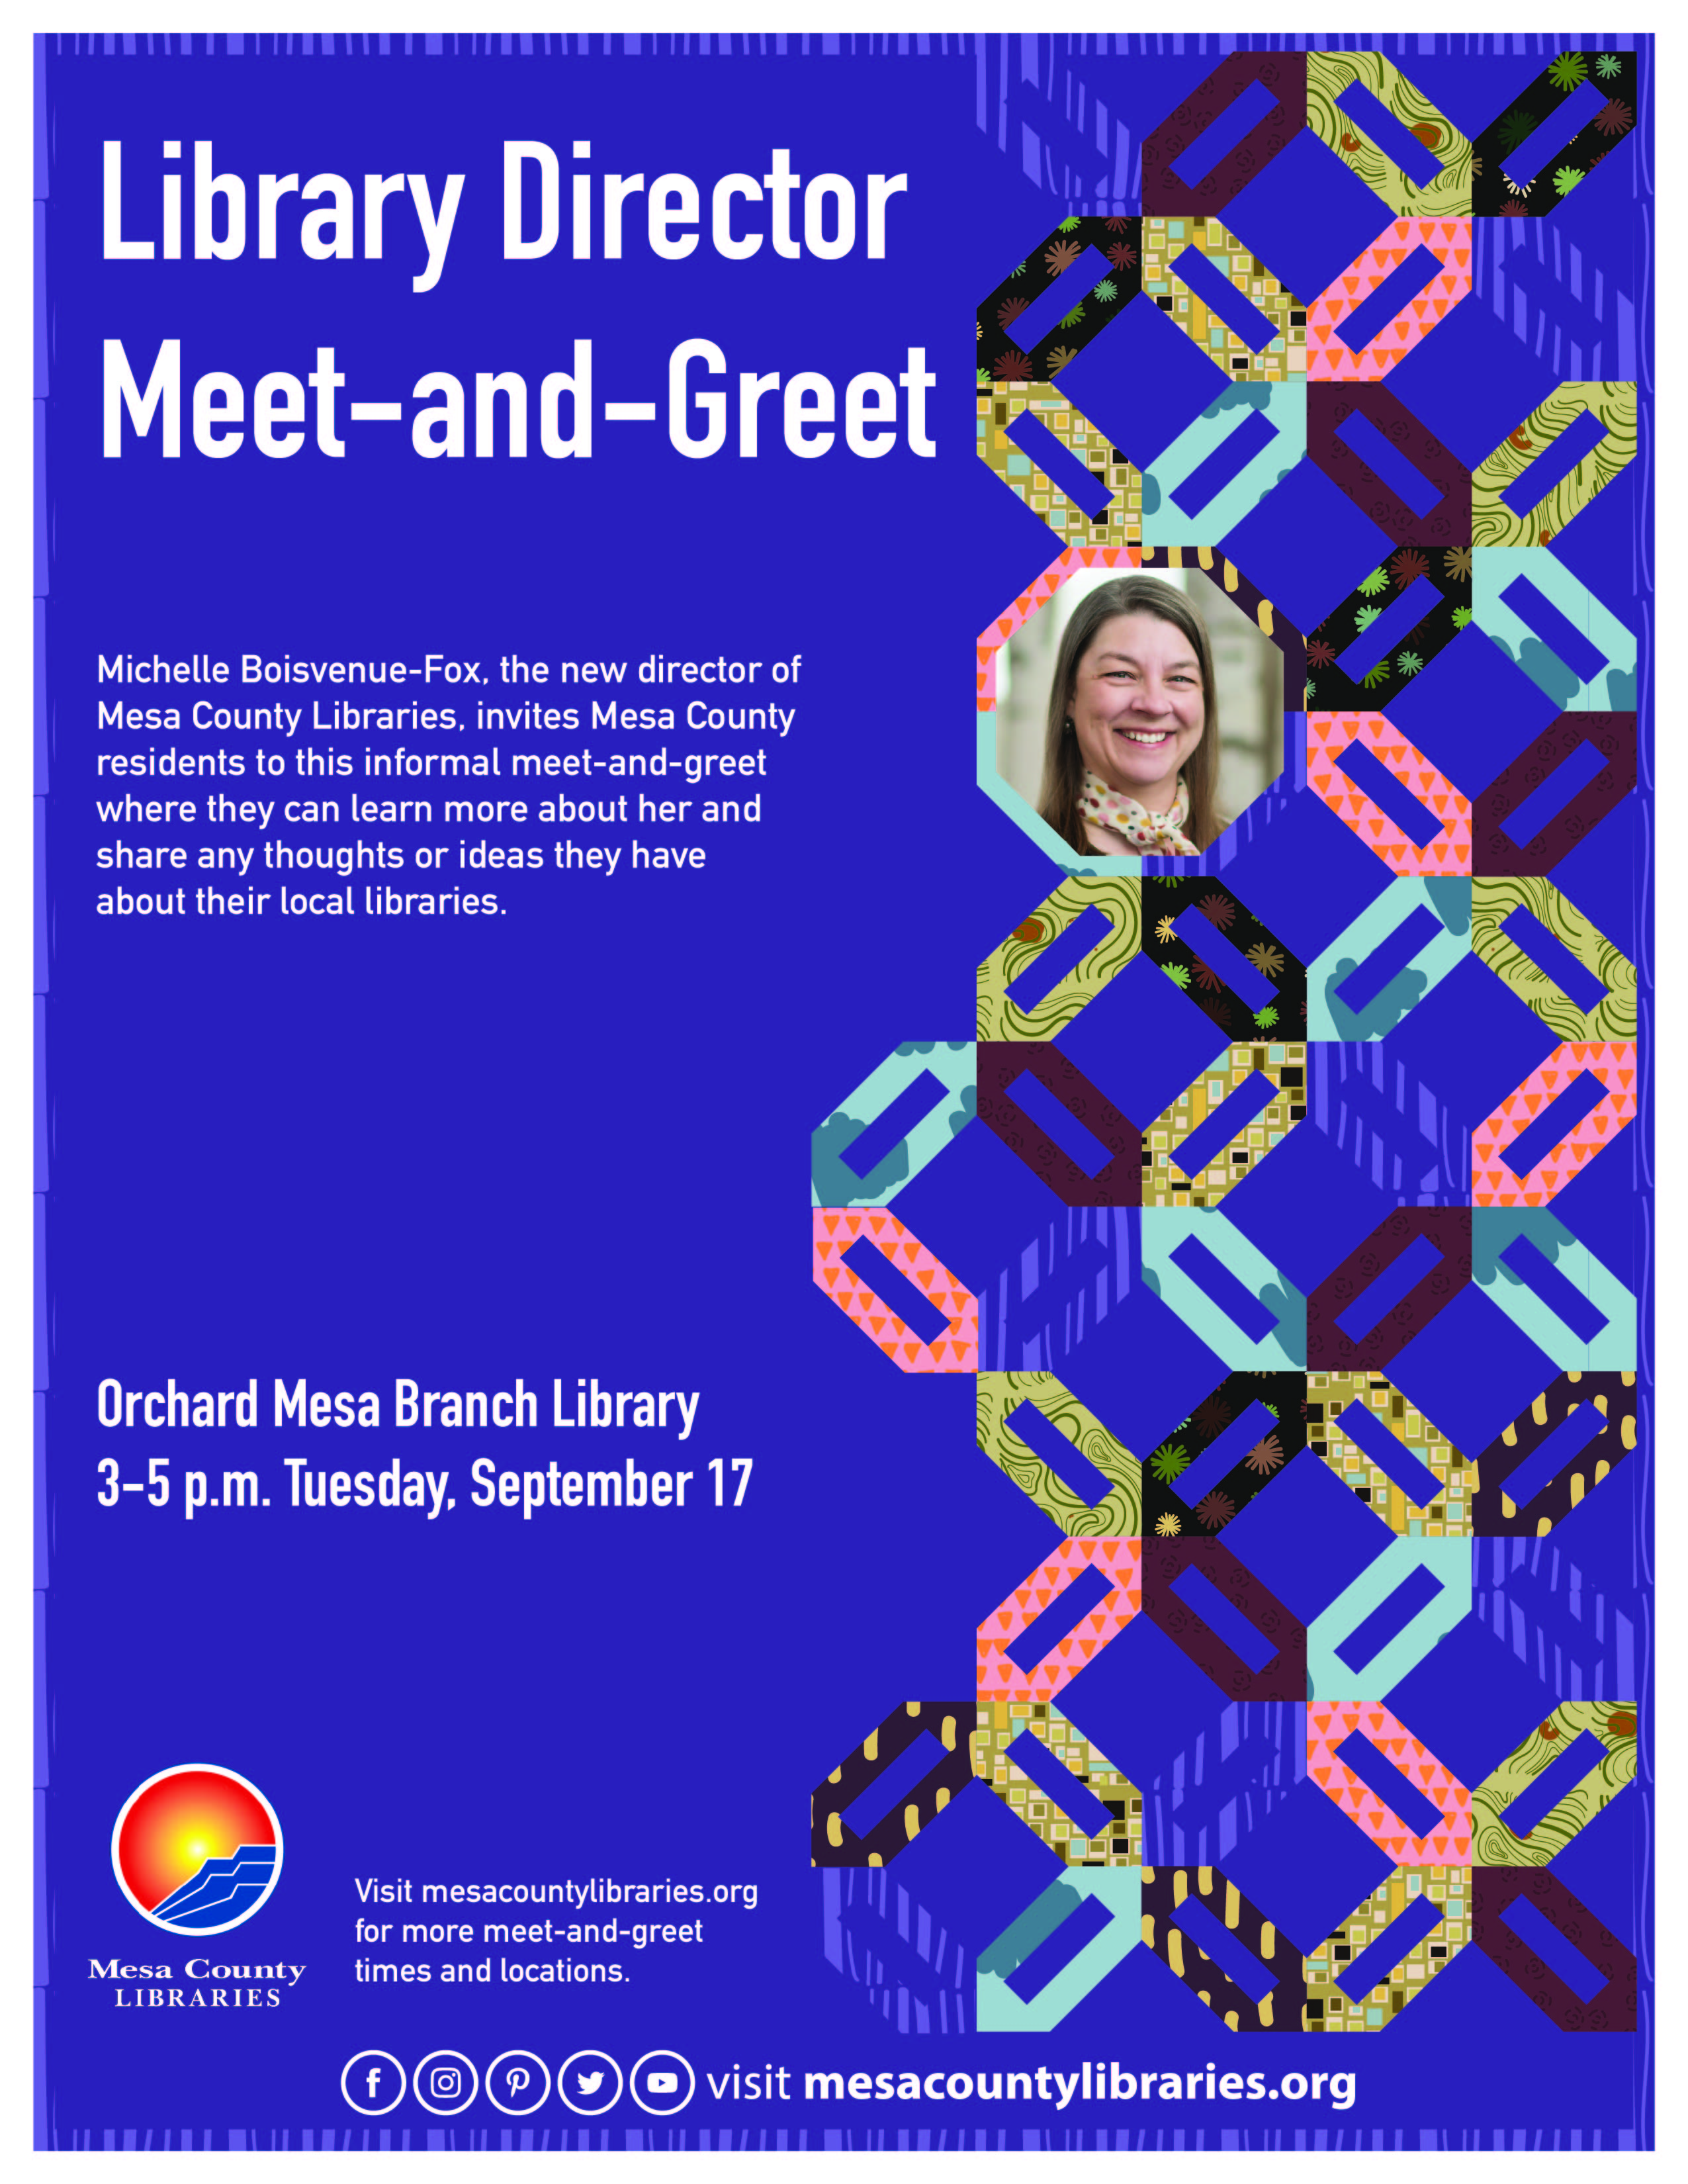 Library Director Meet-and-Greet with Michelle Boisvenue-Fox - Orchard Mesa Branch